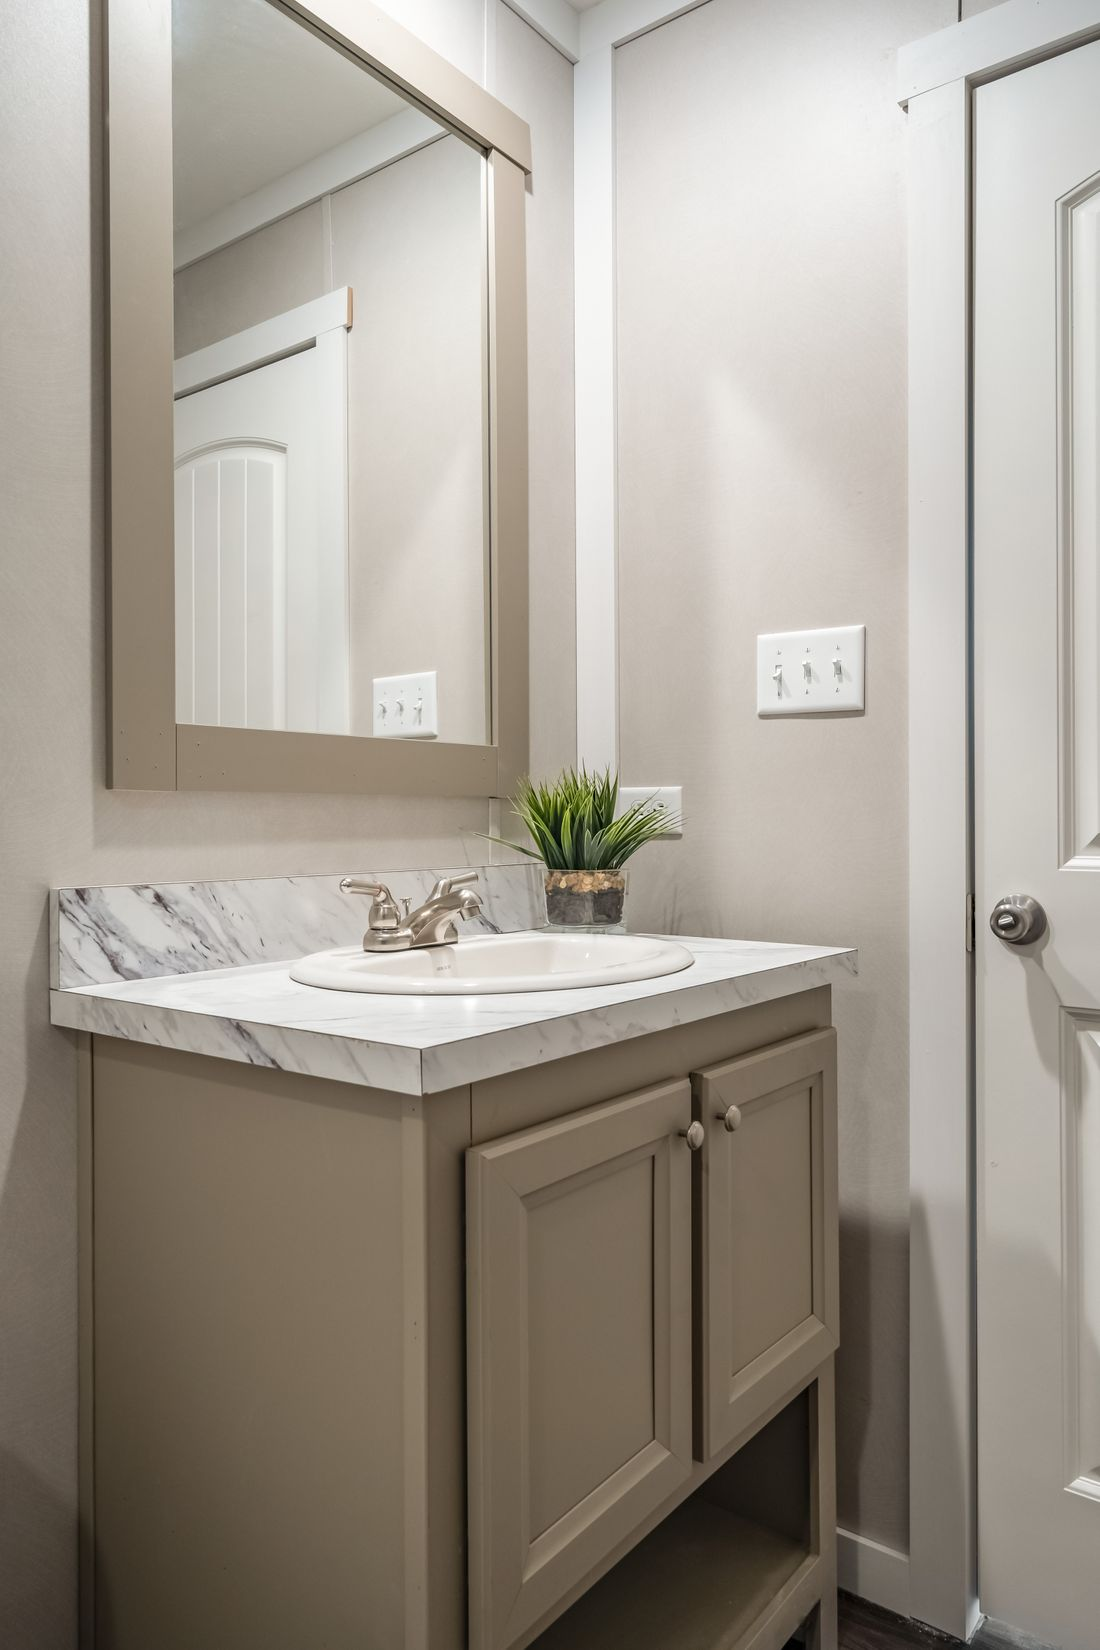 The THE KINGSLAND Guest Bathroom. This Manufactured Mobile Home features 3 bedrooms and 2 baths.